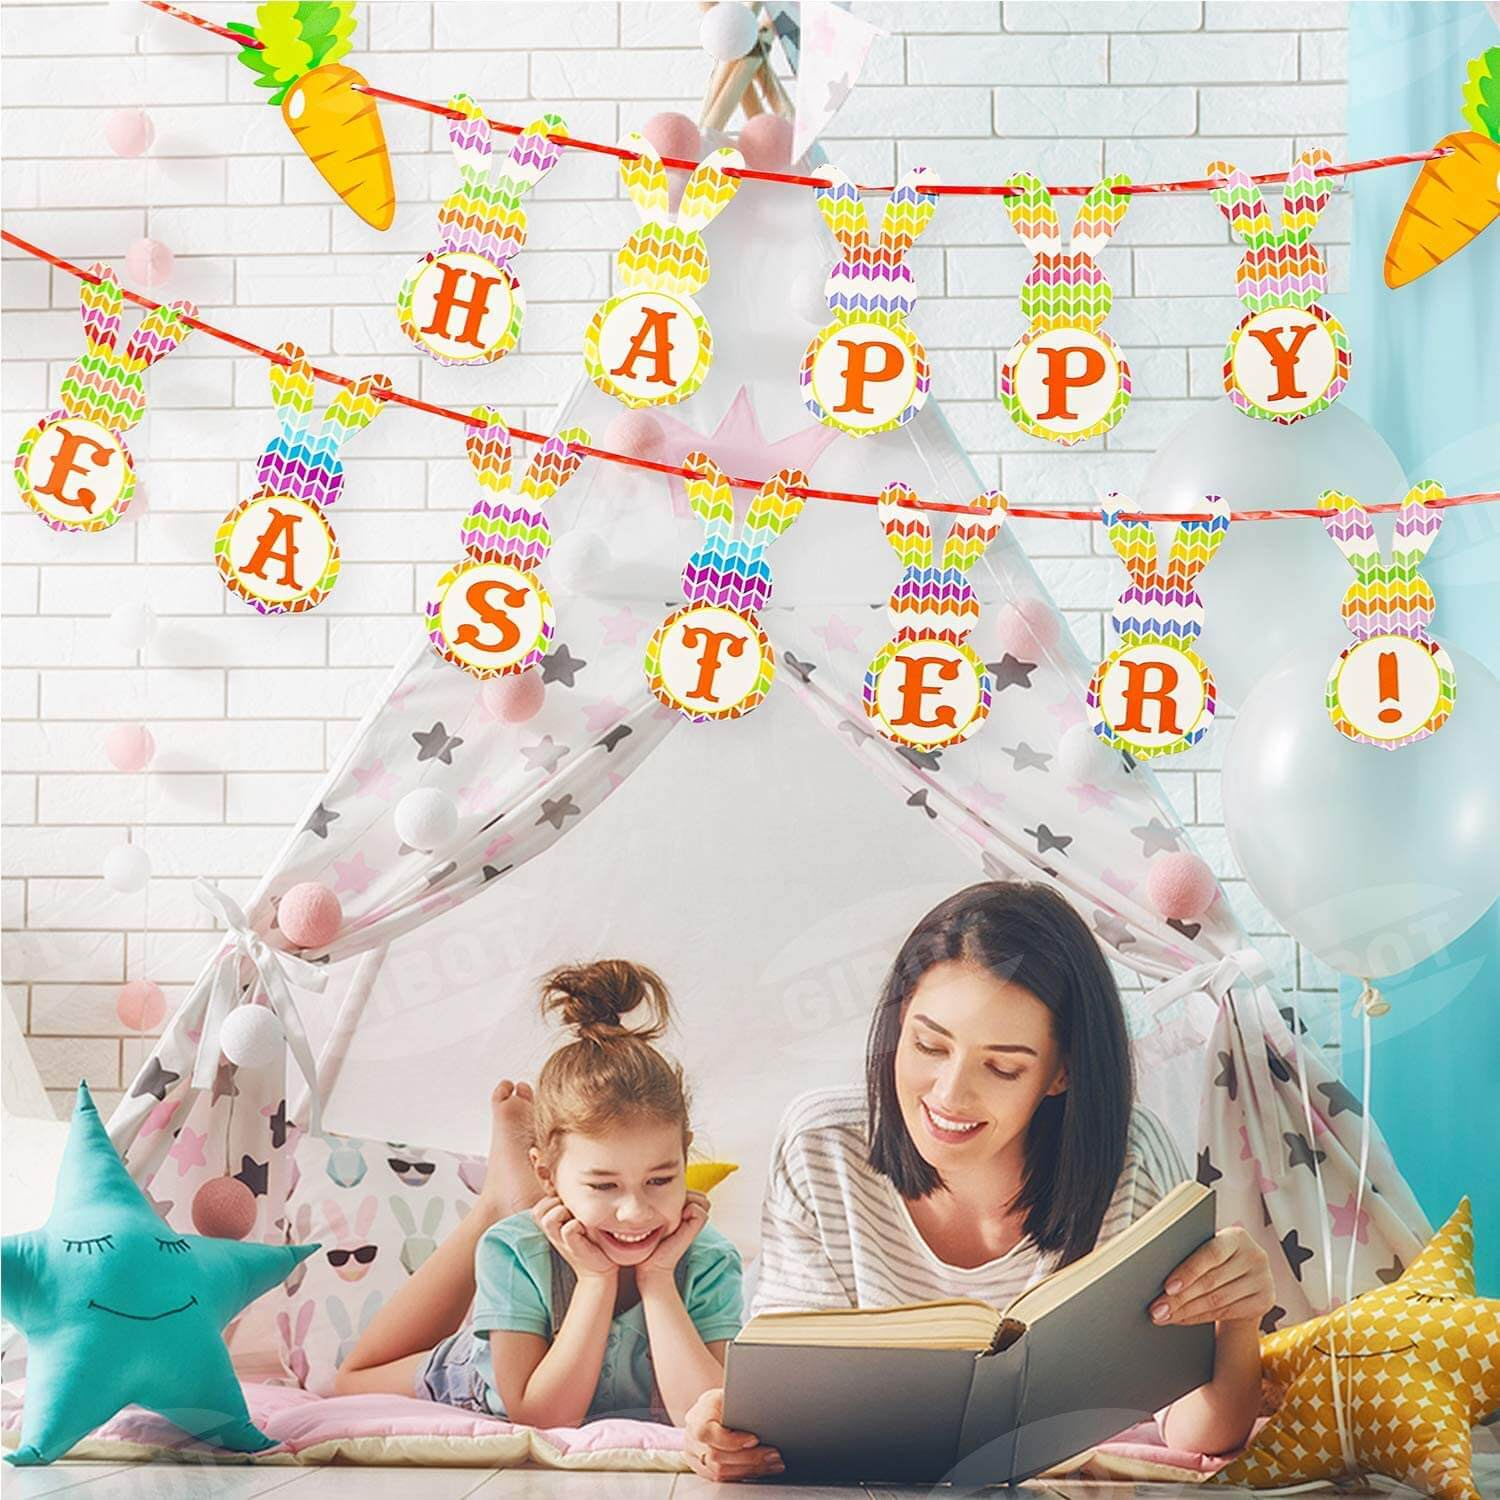 Happy Easter Banners Colorful Bunny Pattern Bunting Garland Easter Decorations Home Party Decor Favors